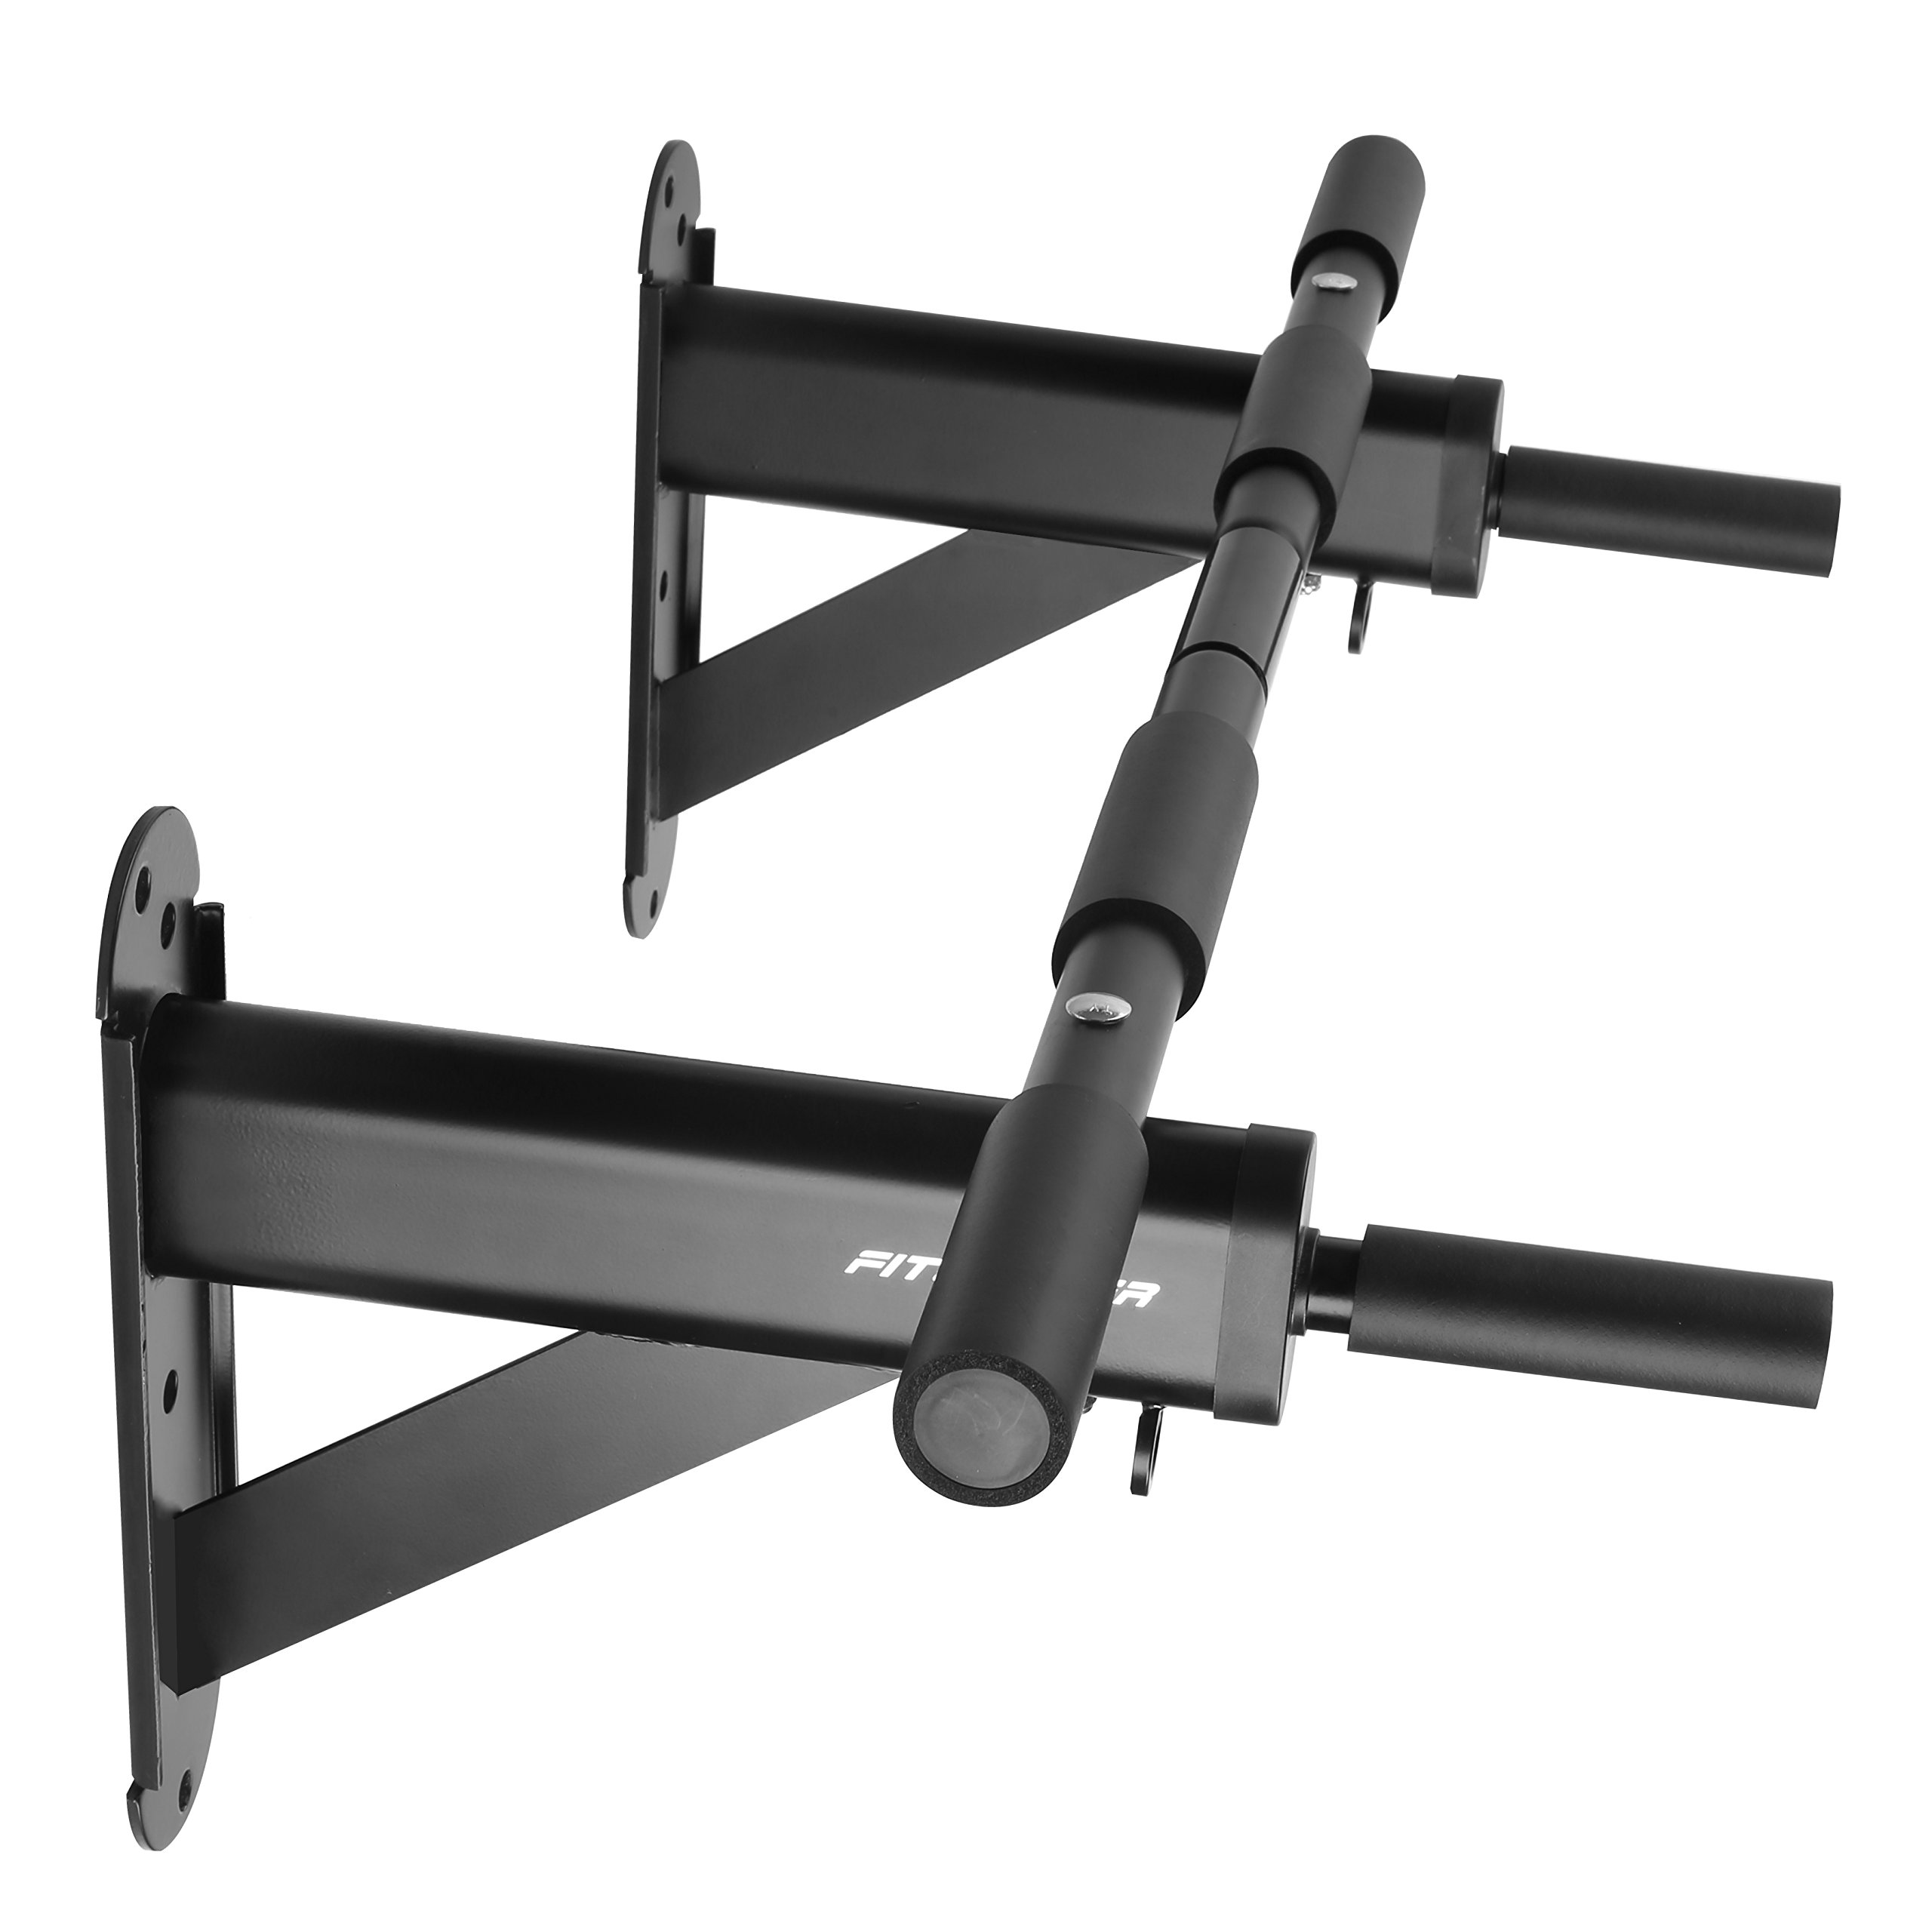 Fitleader FC3 Wall Mounted to 24'' on-center Stud Upper Body Heavy Duty Pull Up Chin Up Bar Black